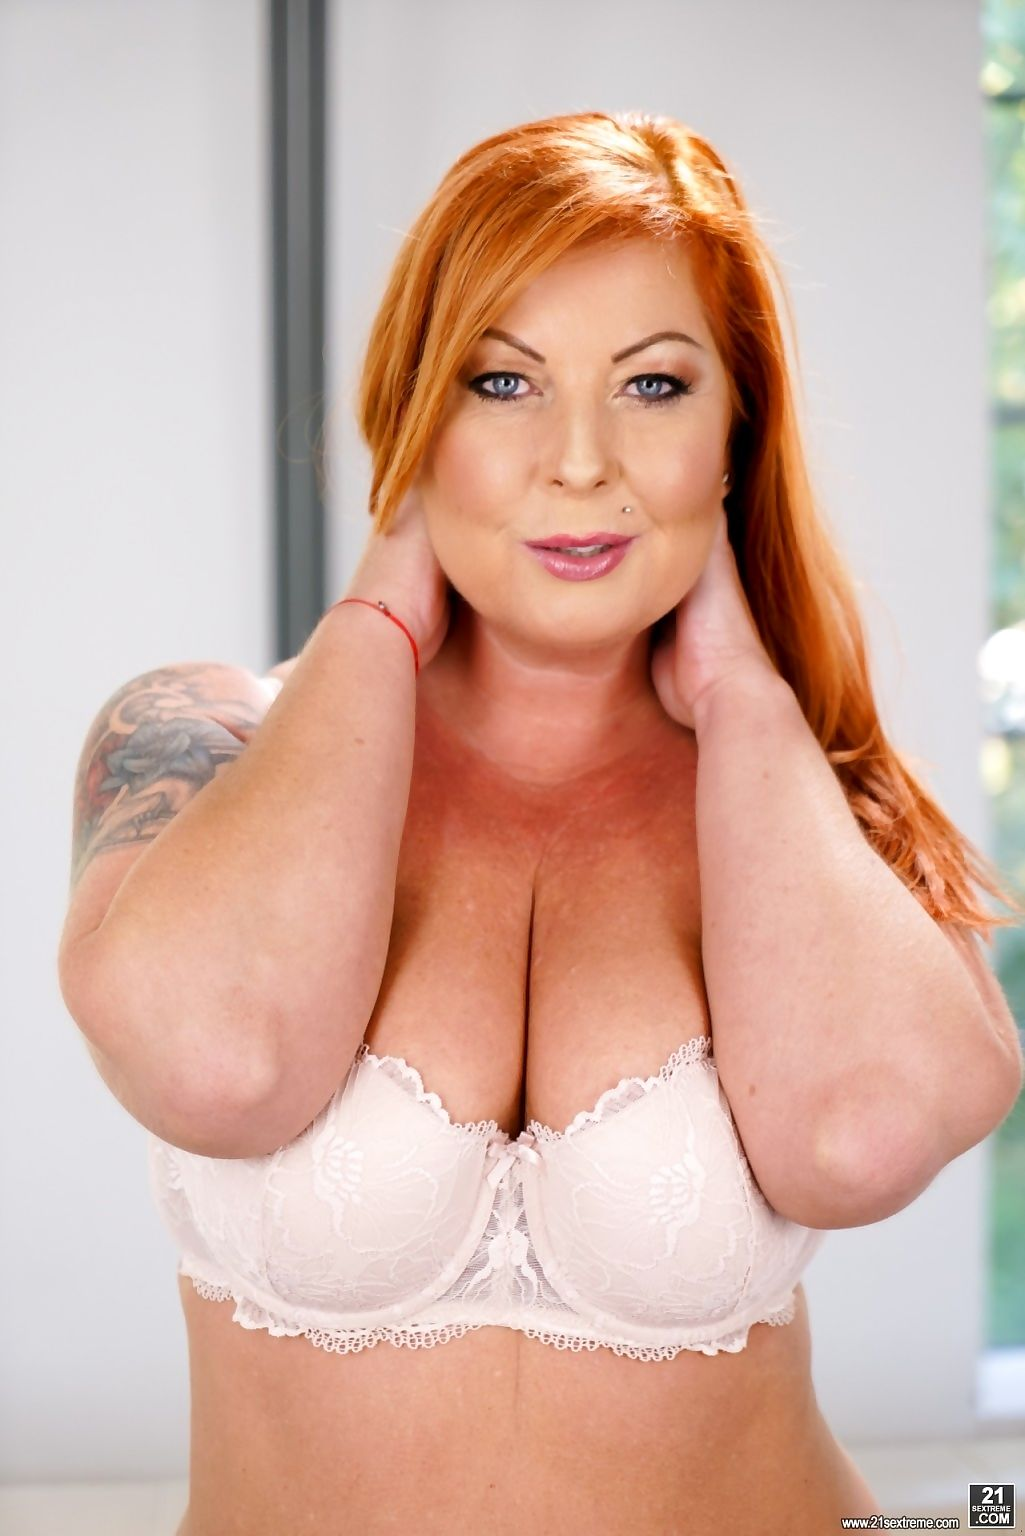 Experienced redhead granny tammy jean likes living large - part 1222